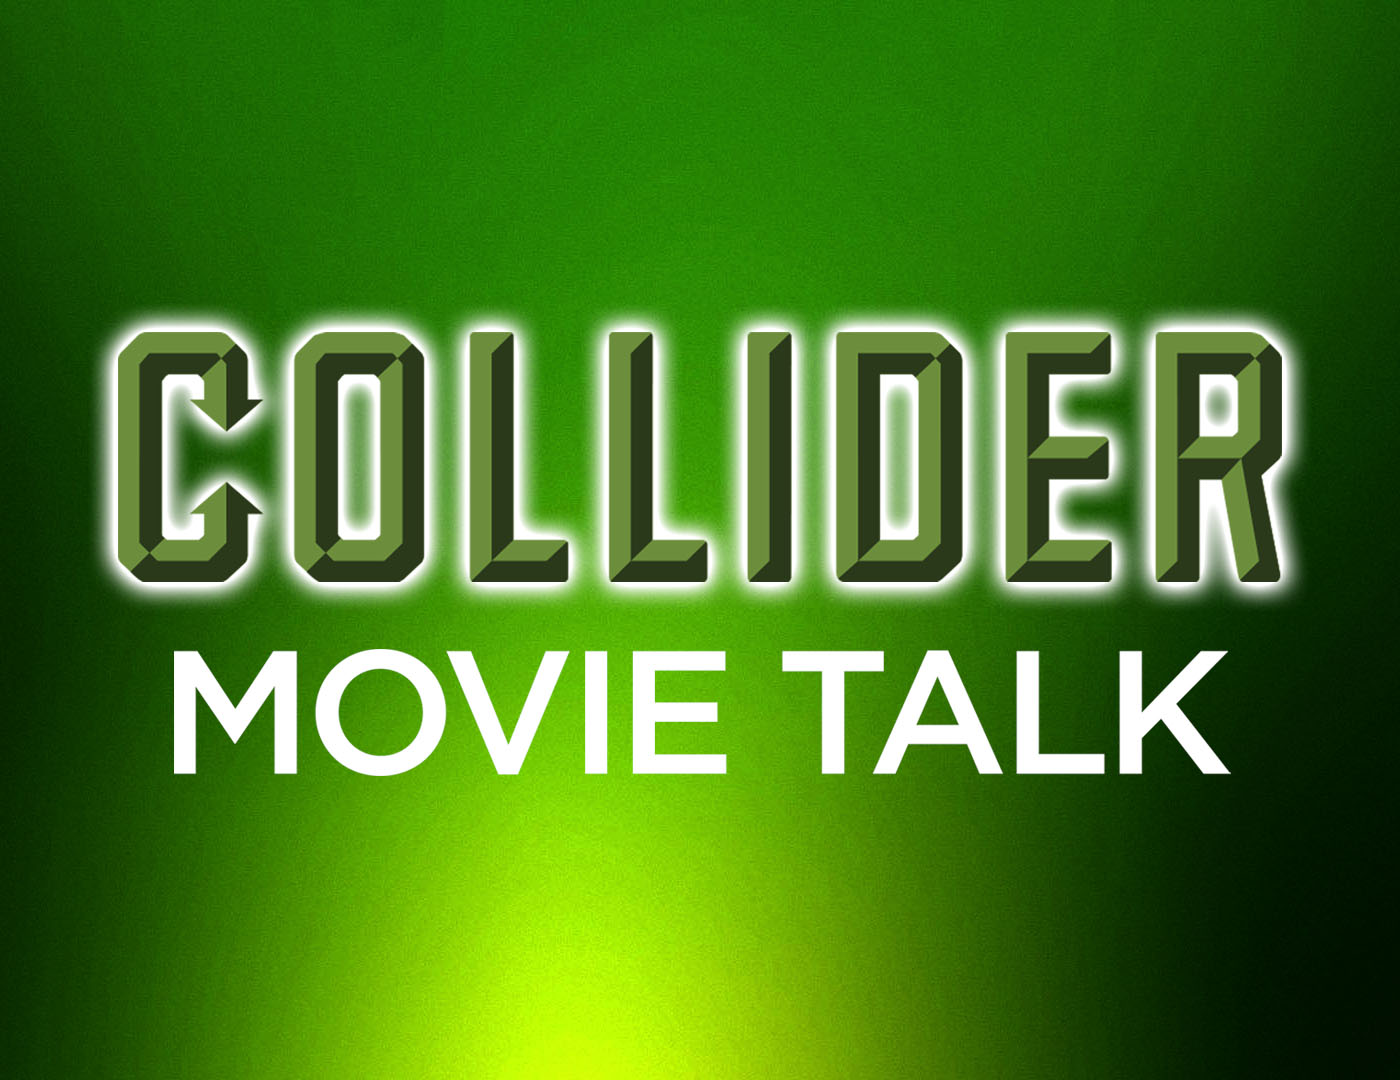 Collider Movie Talk - Batman V Superman Gets Rating, Game of Thrones Movie Coming?